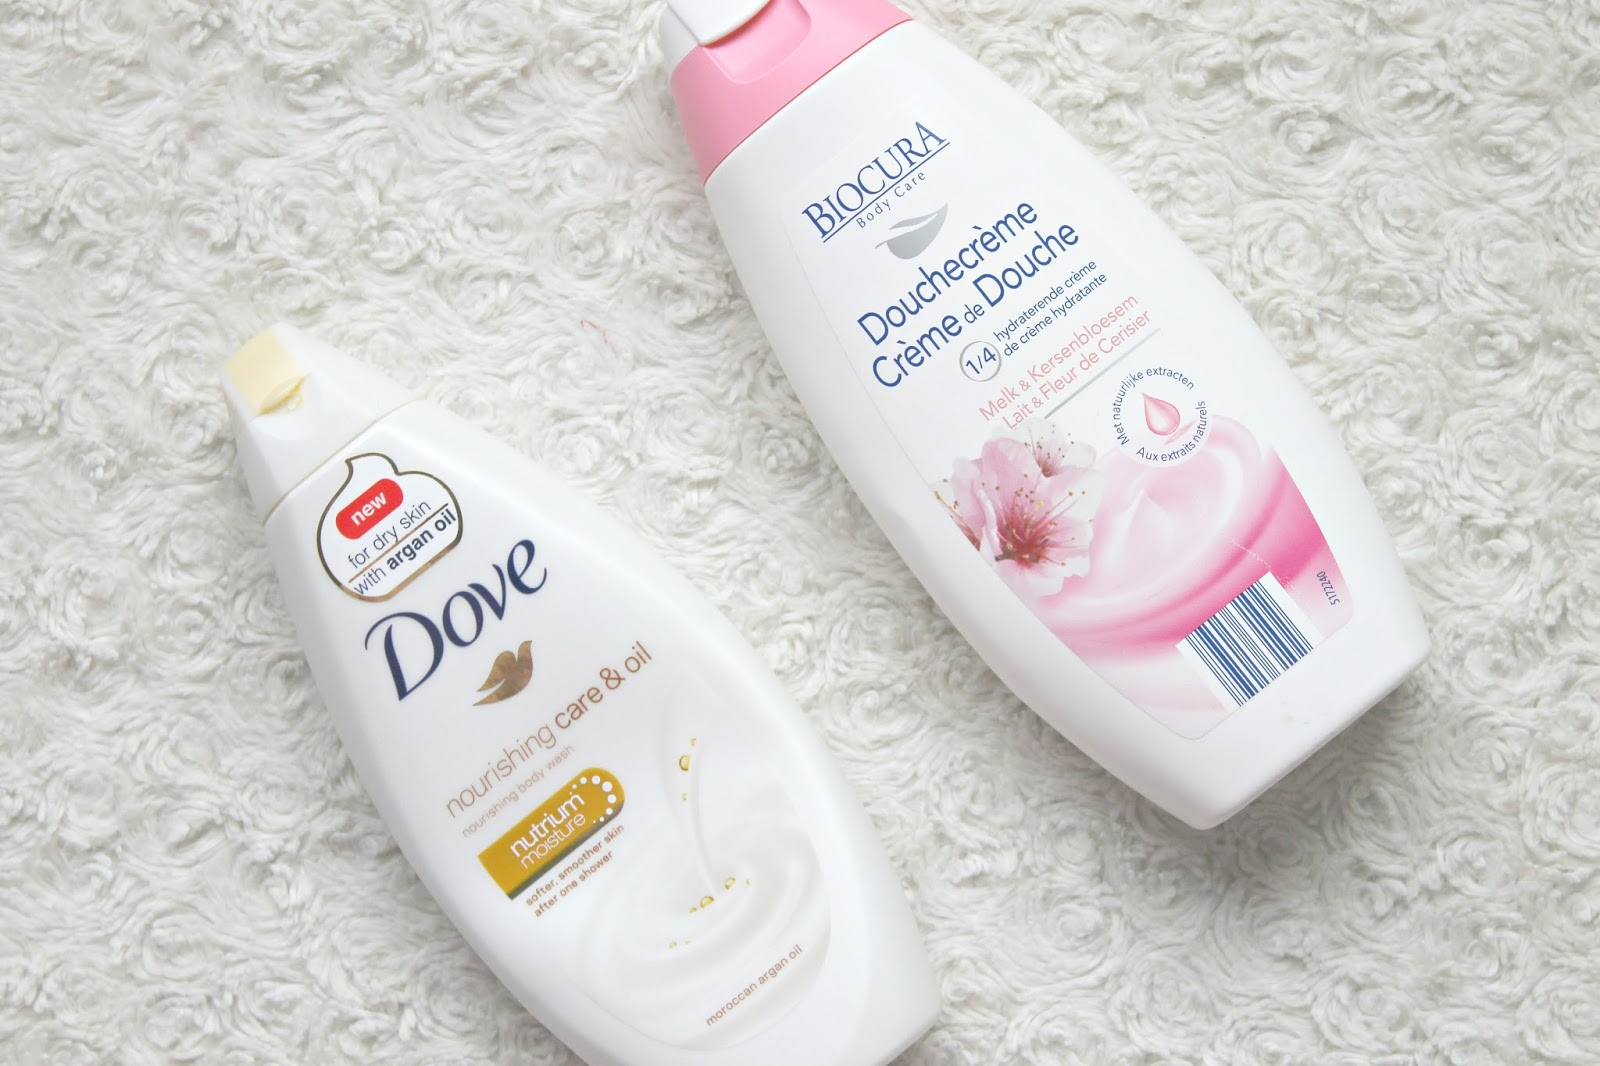 dove nourishing care oil moroccon argan oil body wash biocura hydraterende douchecreme melk kersenbloesem